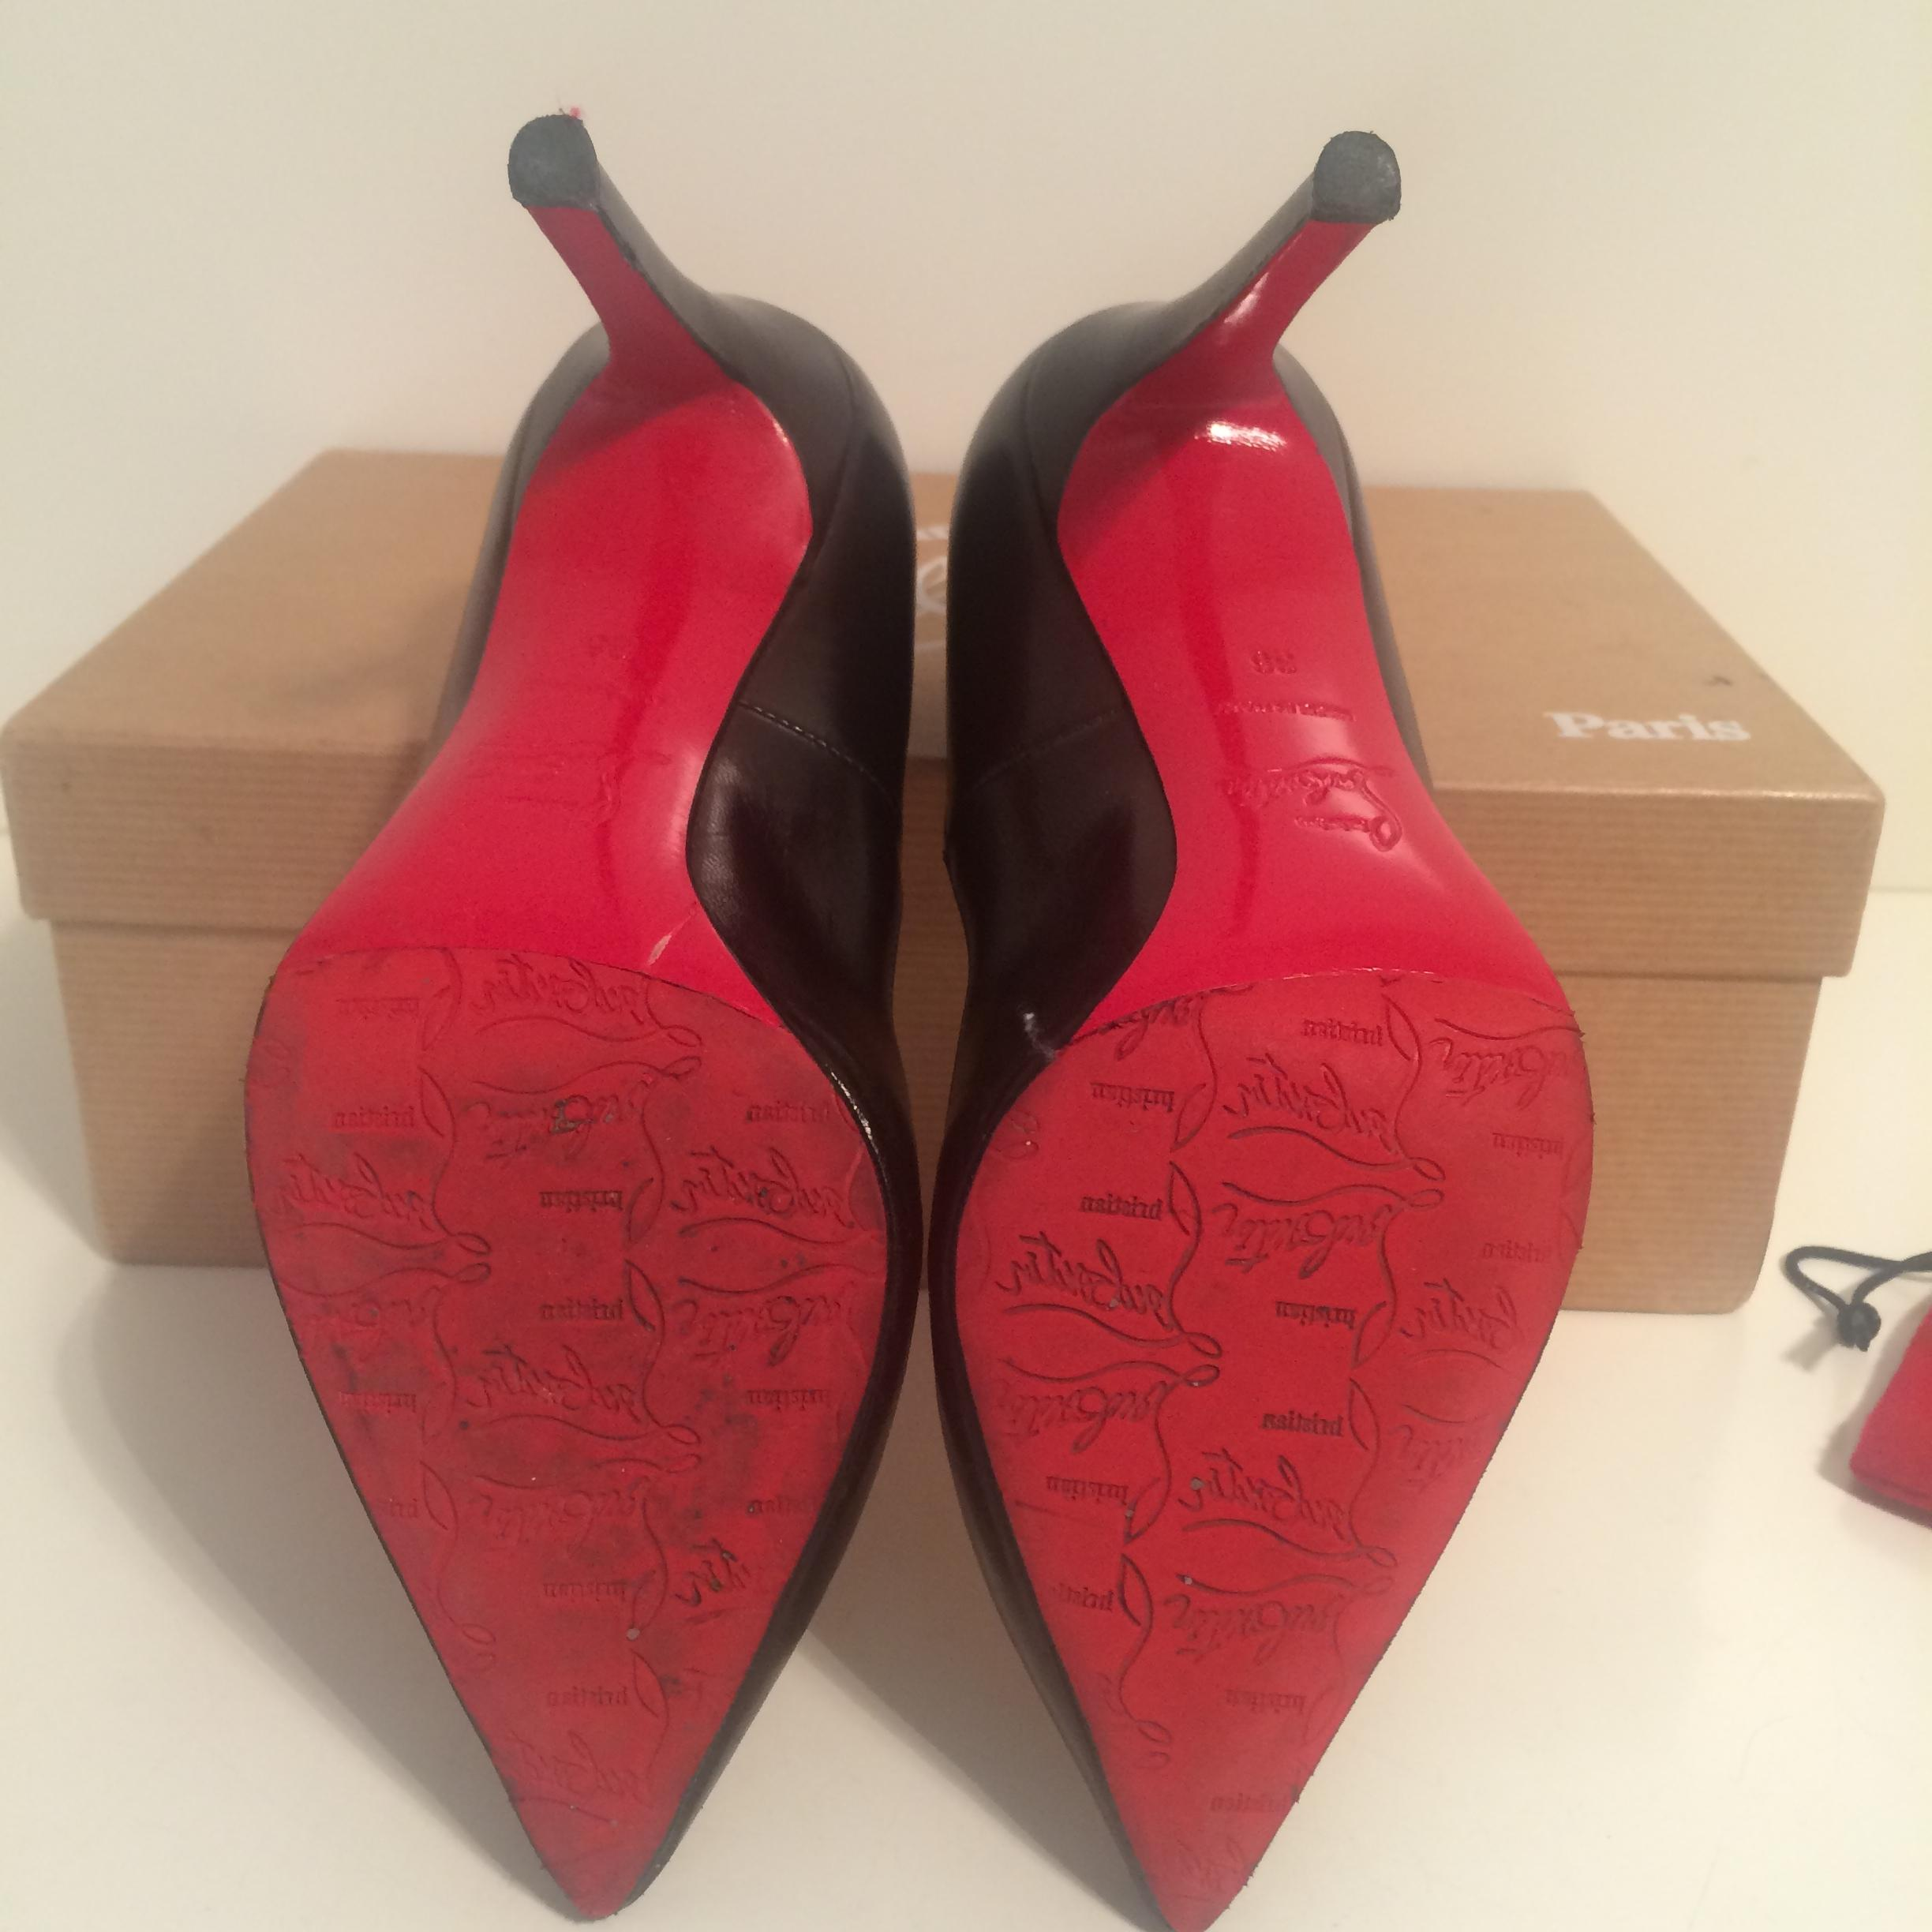 bfe62c48836 ... Christian Louboutin Black Pigalle 100 Leather Leather Leather Eu 36 - 6  Pumps Size US 5.5 ...